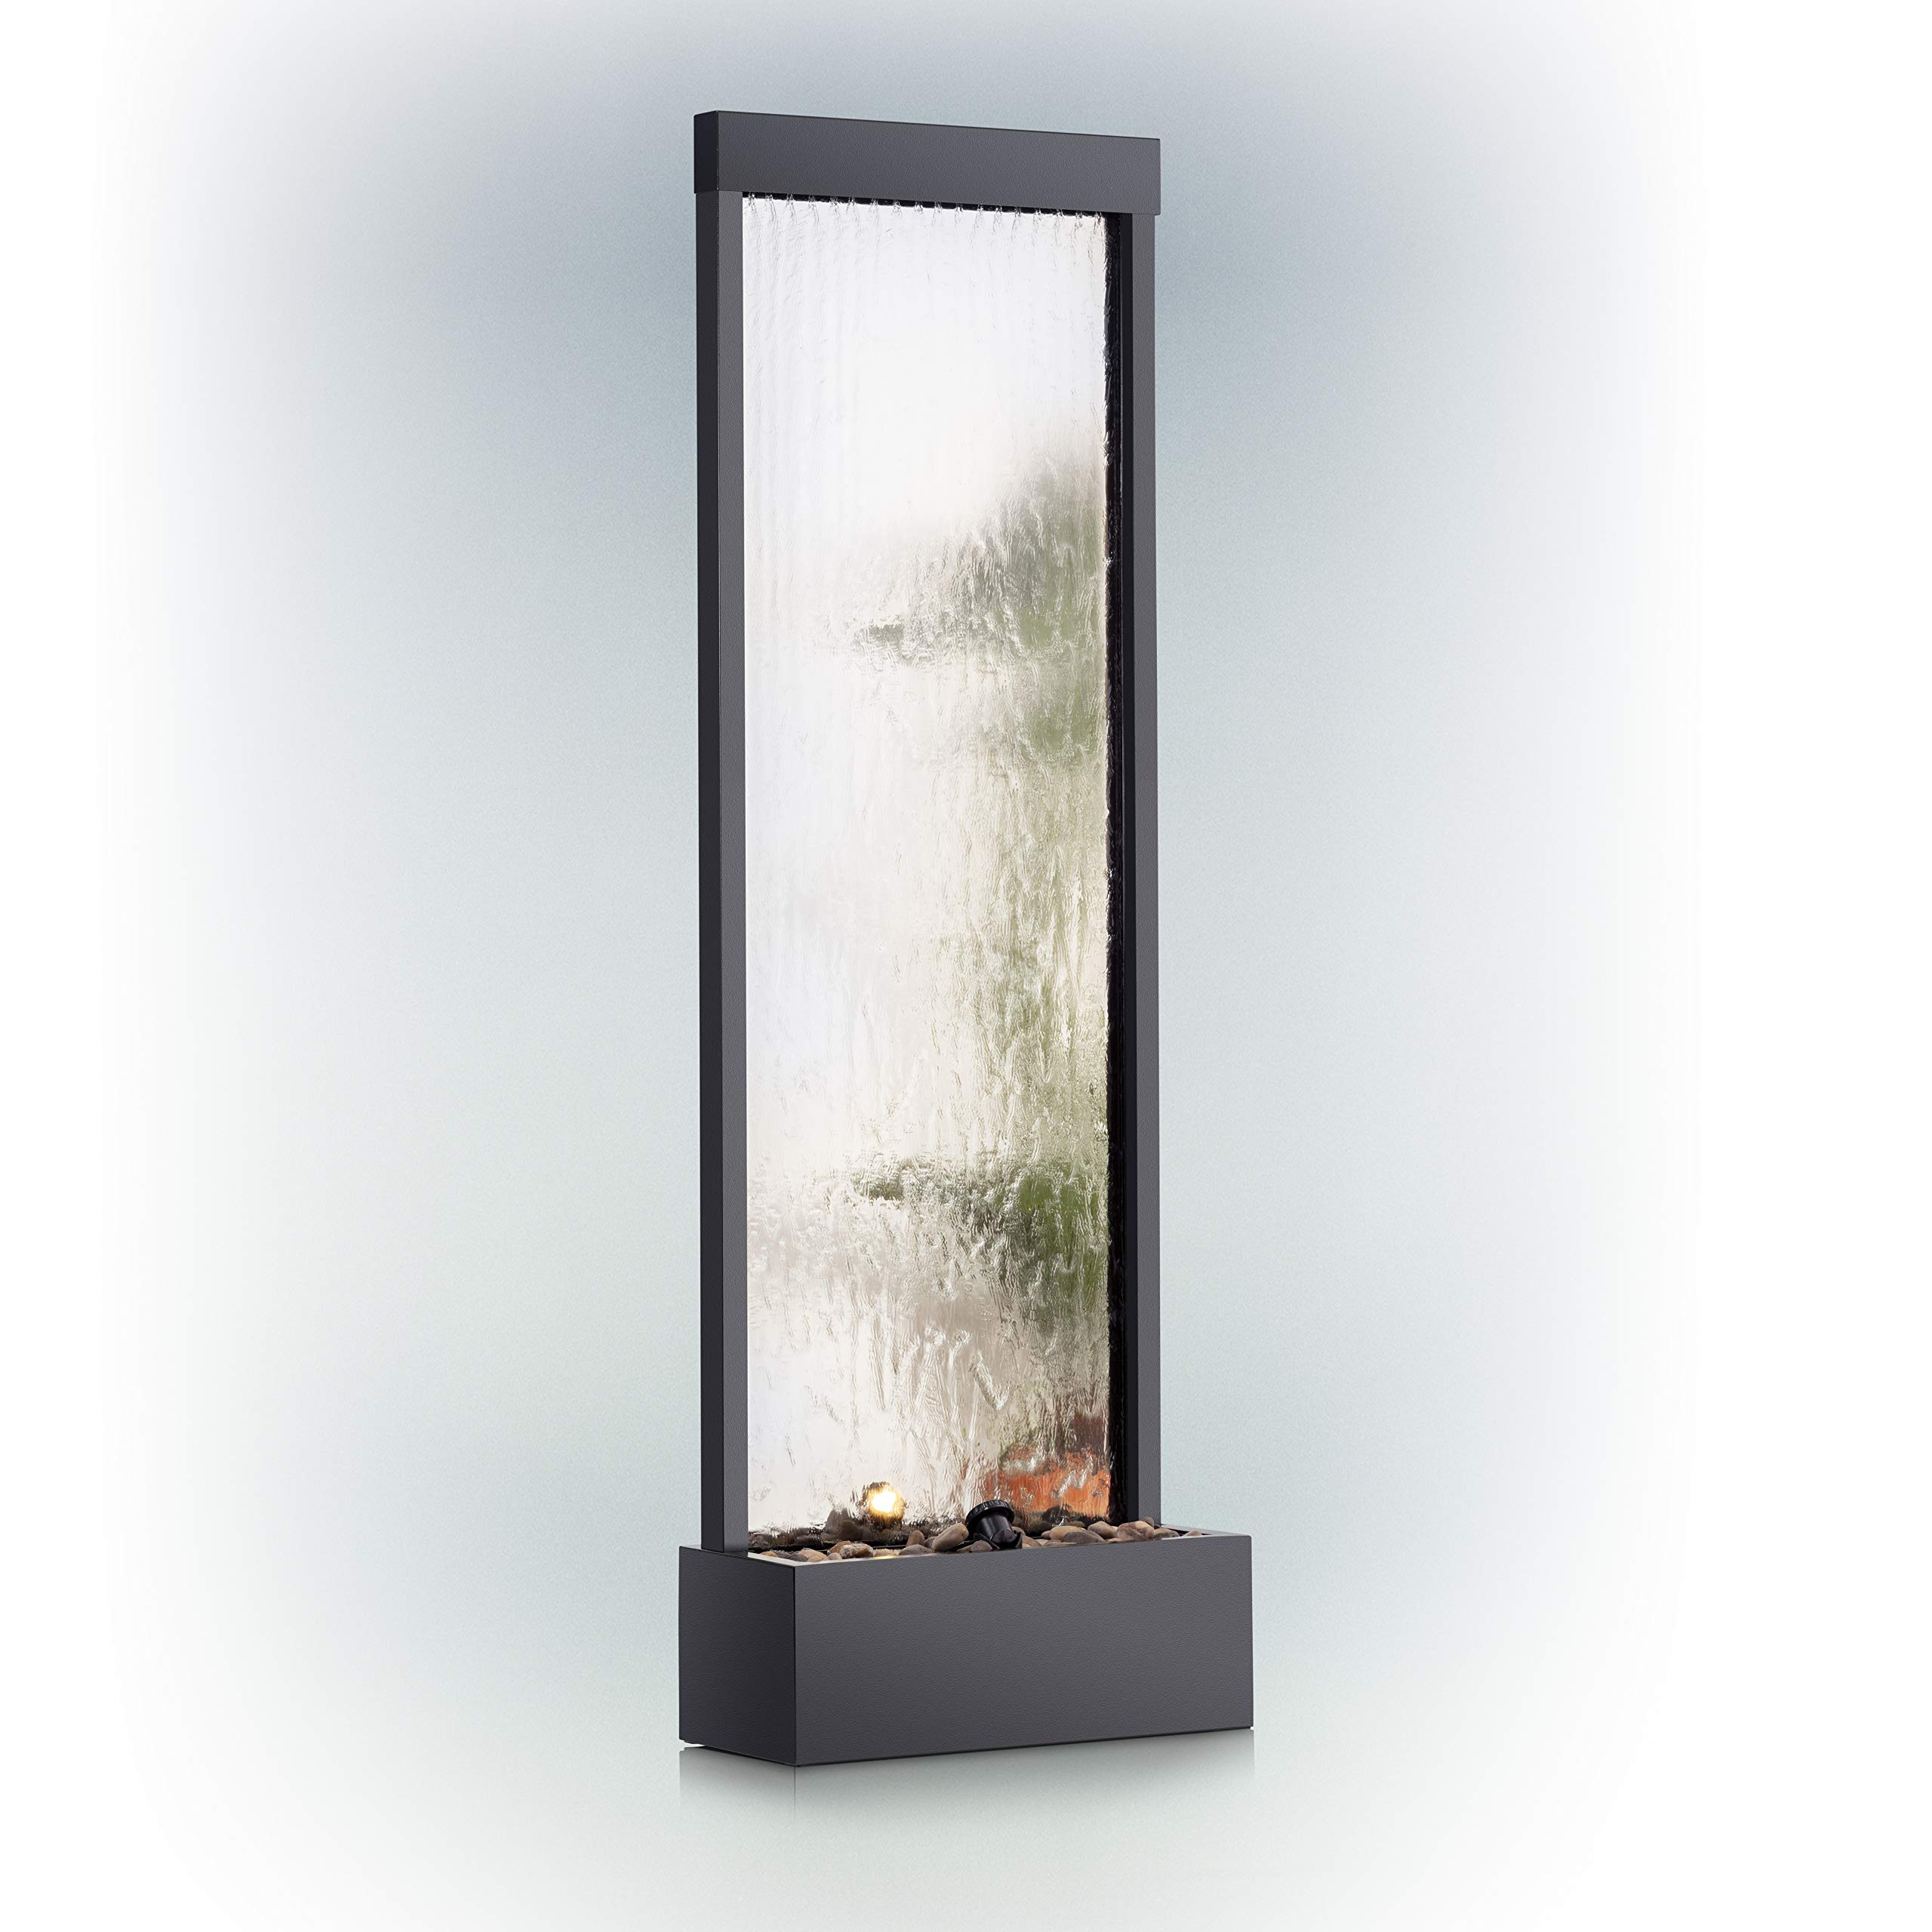 Alpine Corporation Mirror Waterfall Fountain with Stones and Lights - Zen Indoor/Outdoor Decor for Office, Living Room, Patio, Entryway - 72 Inches by Alpine Corporation